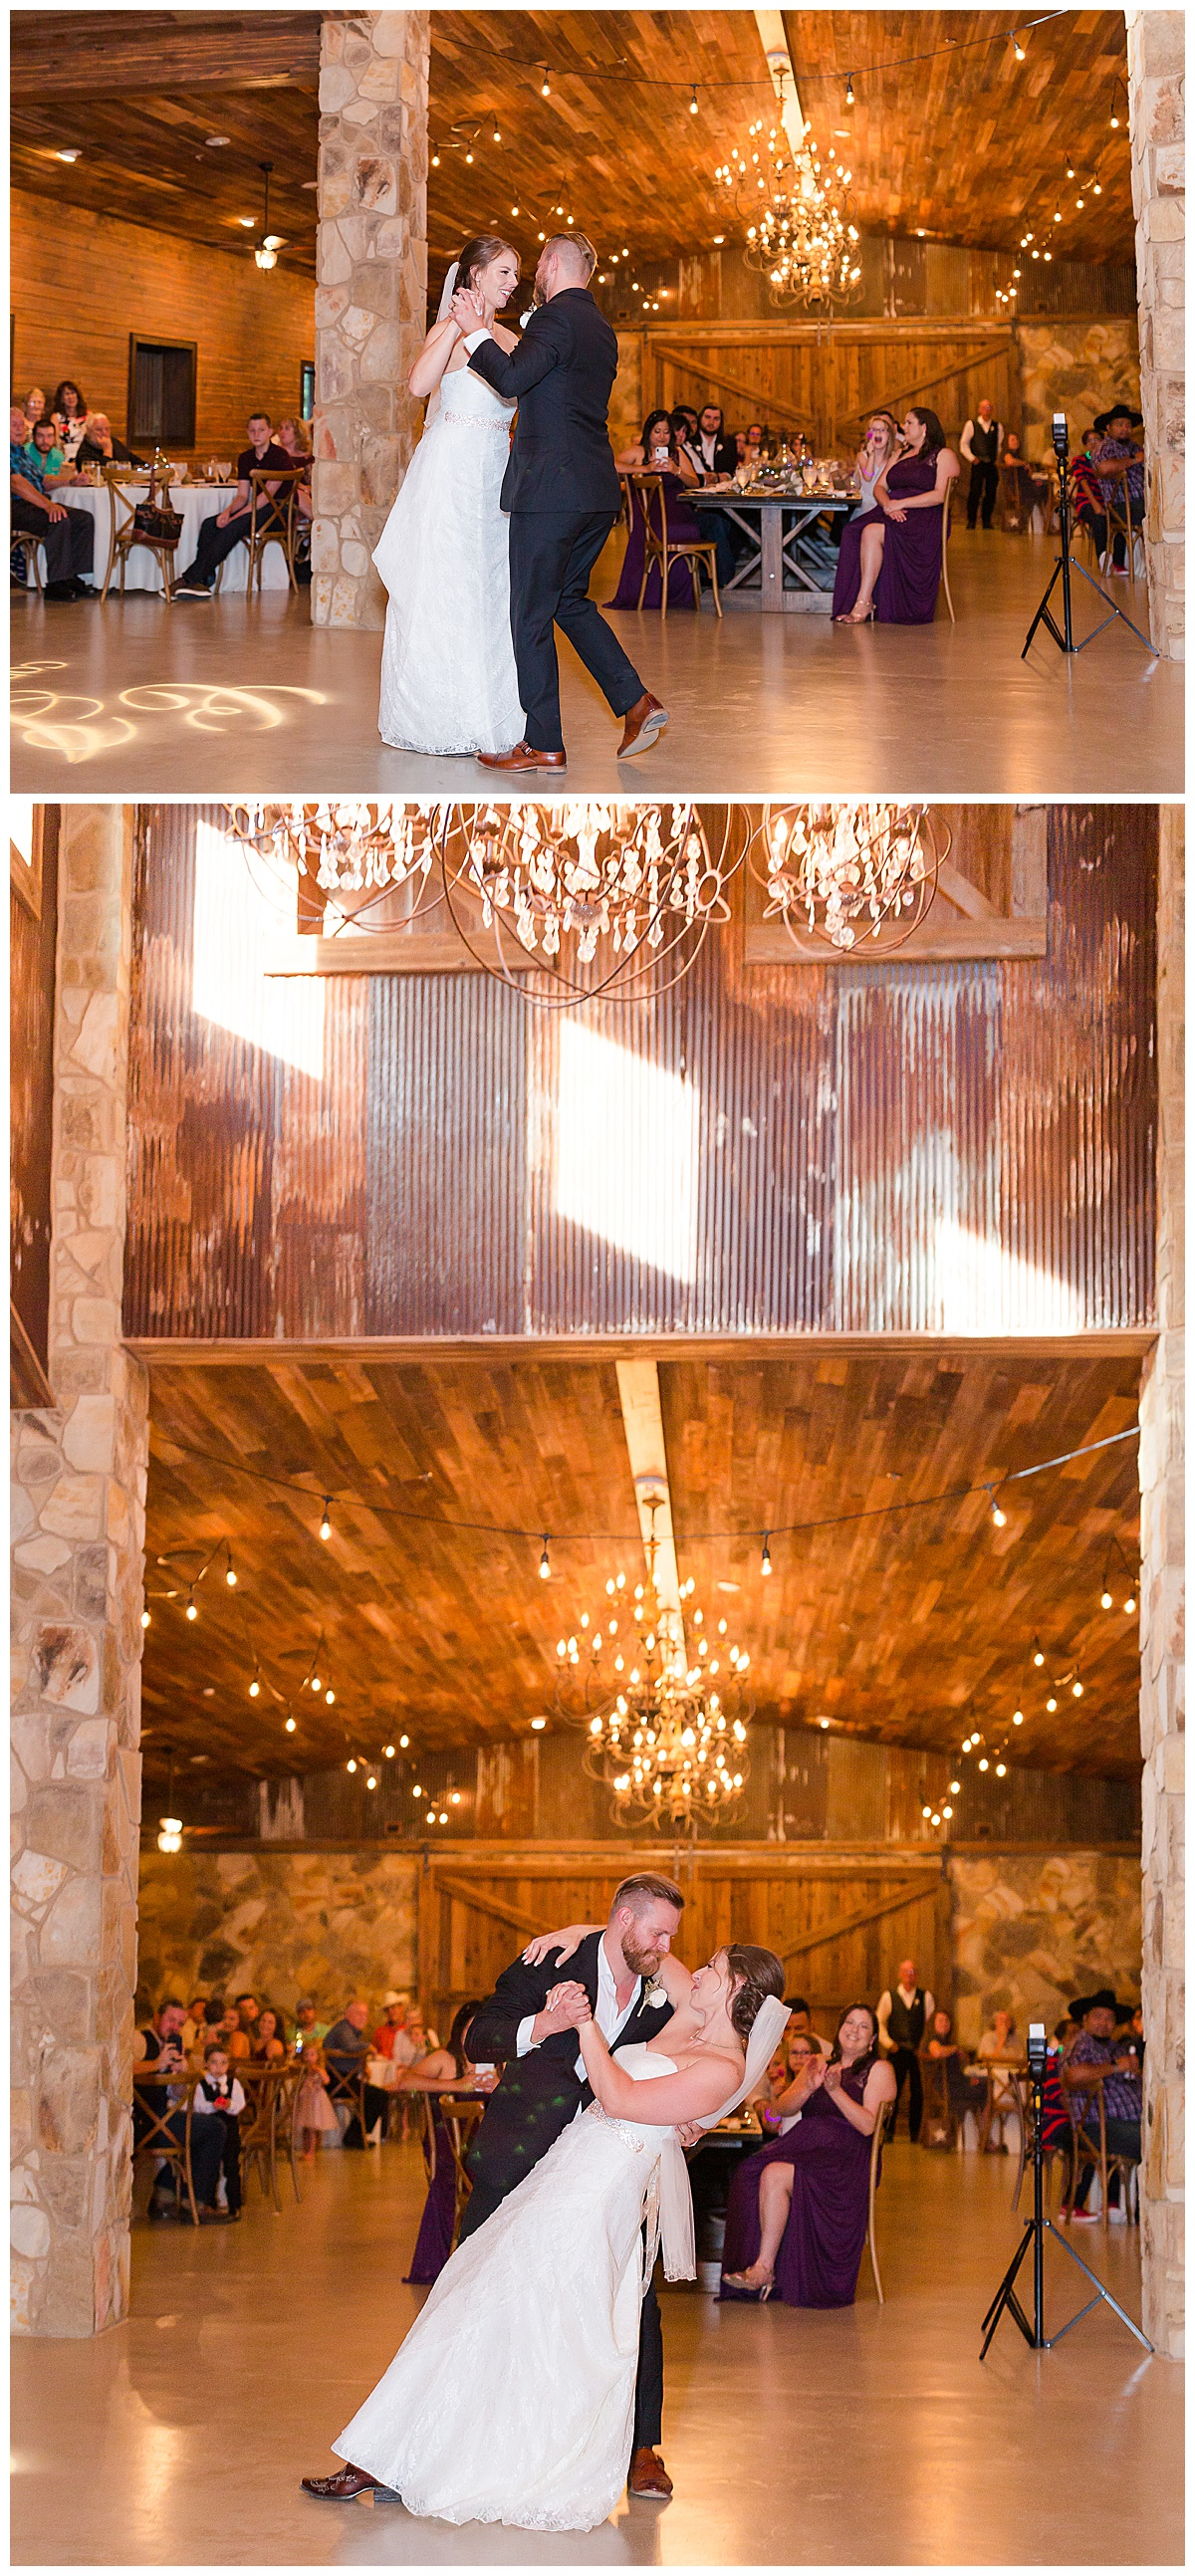 Texas-Magnolia-Bells-Rustic-Wedding-Carly-Barton-Photography_0072.jpg